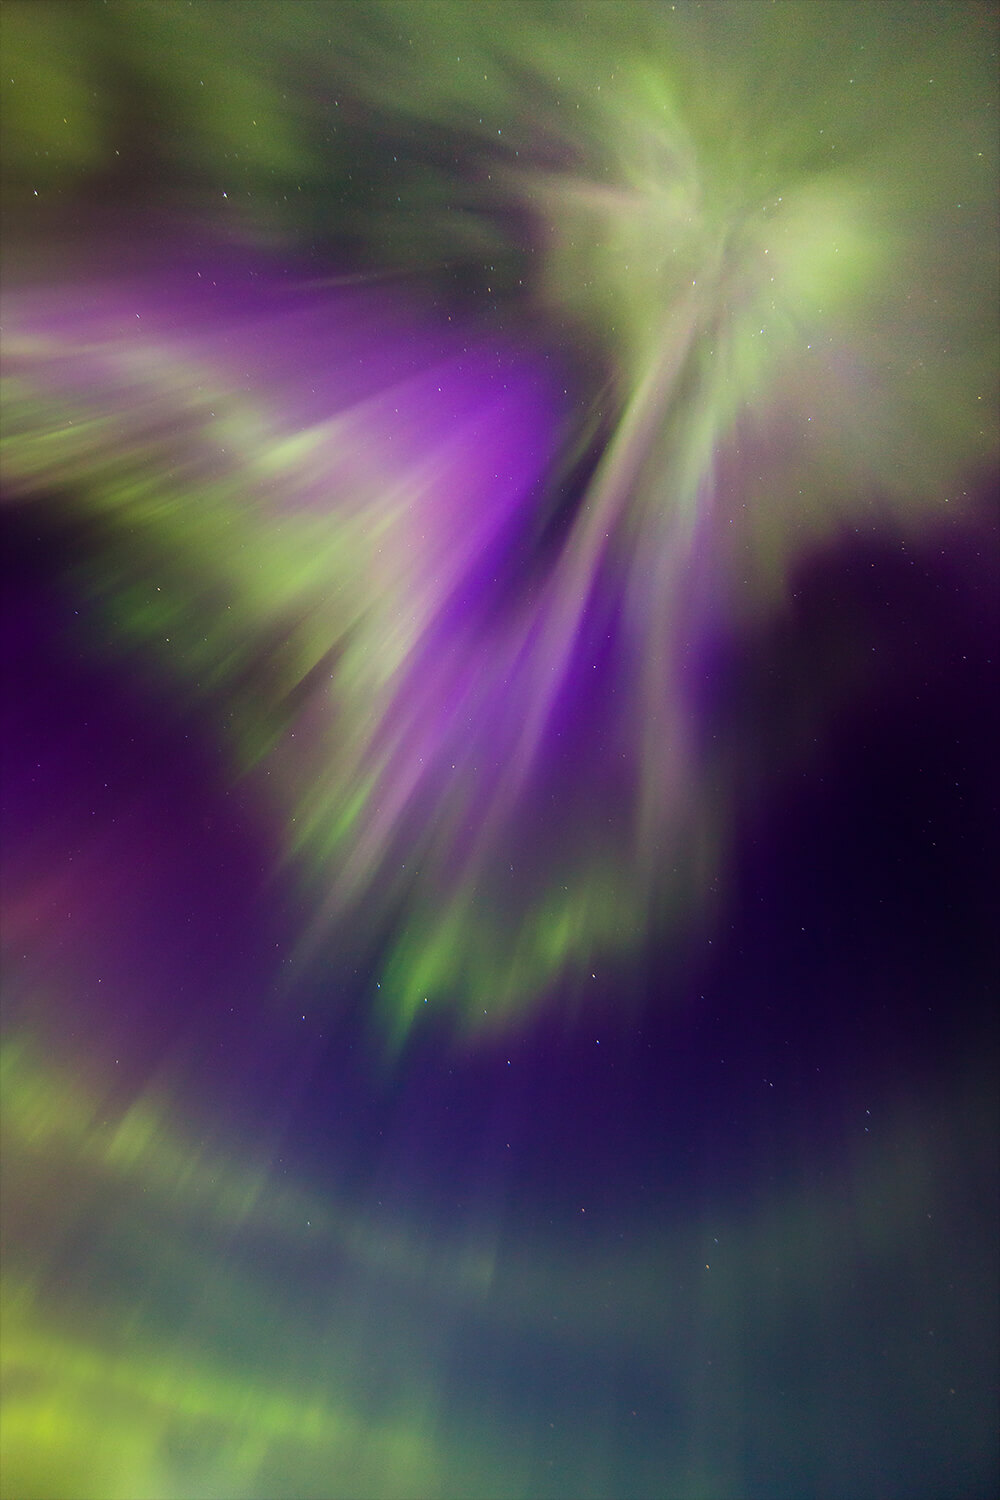 photo of the Northern lights with green and purple tones. Shot by Neil Bloem